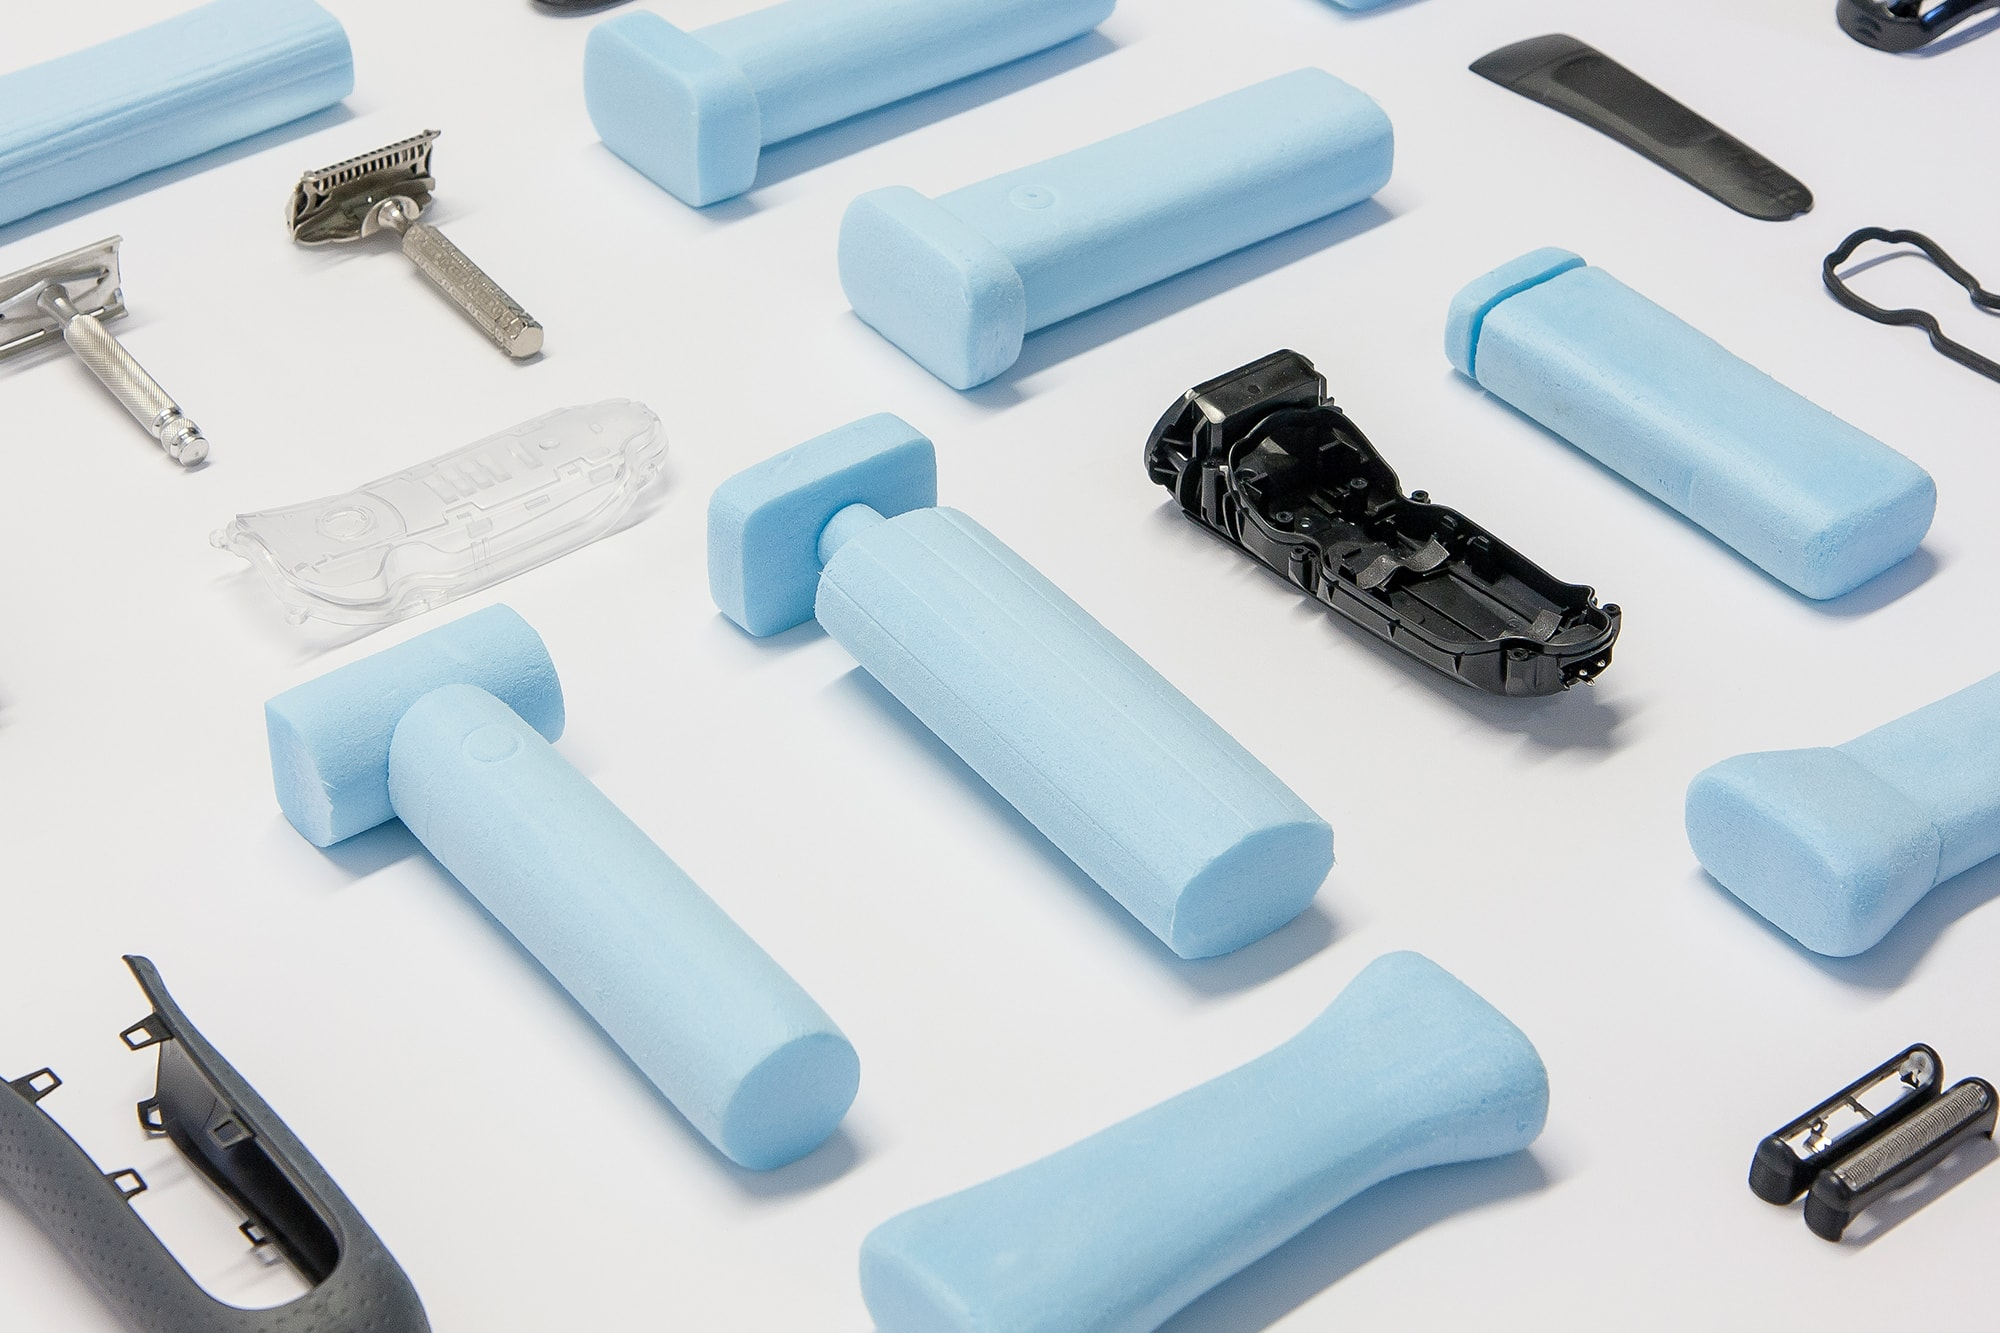 Blue foam models and dismantled shavers laid out on a white background.